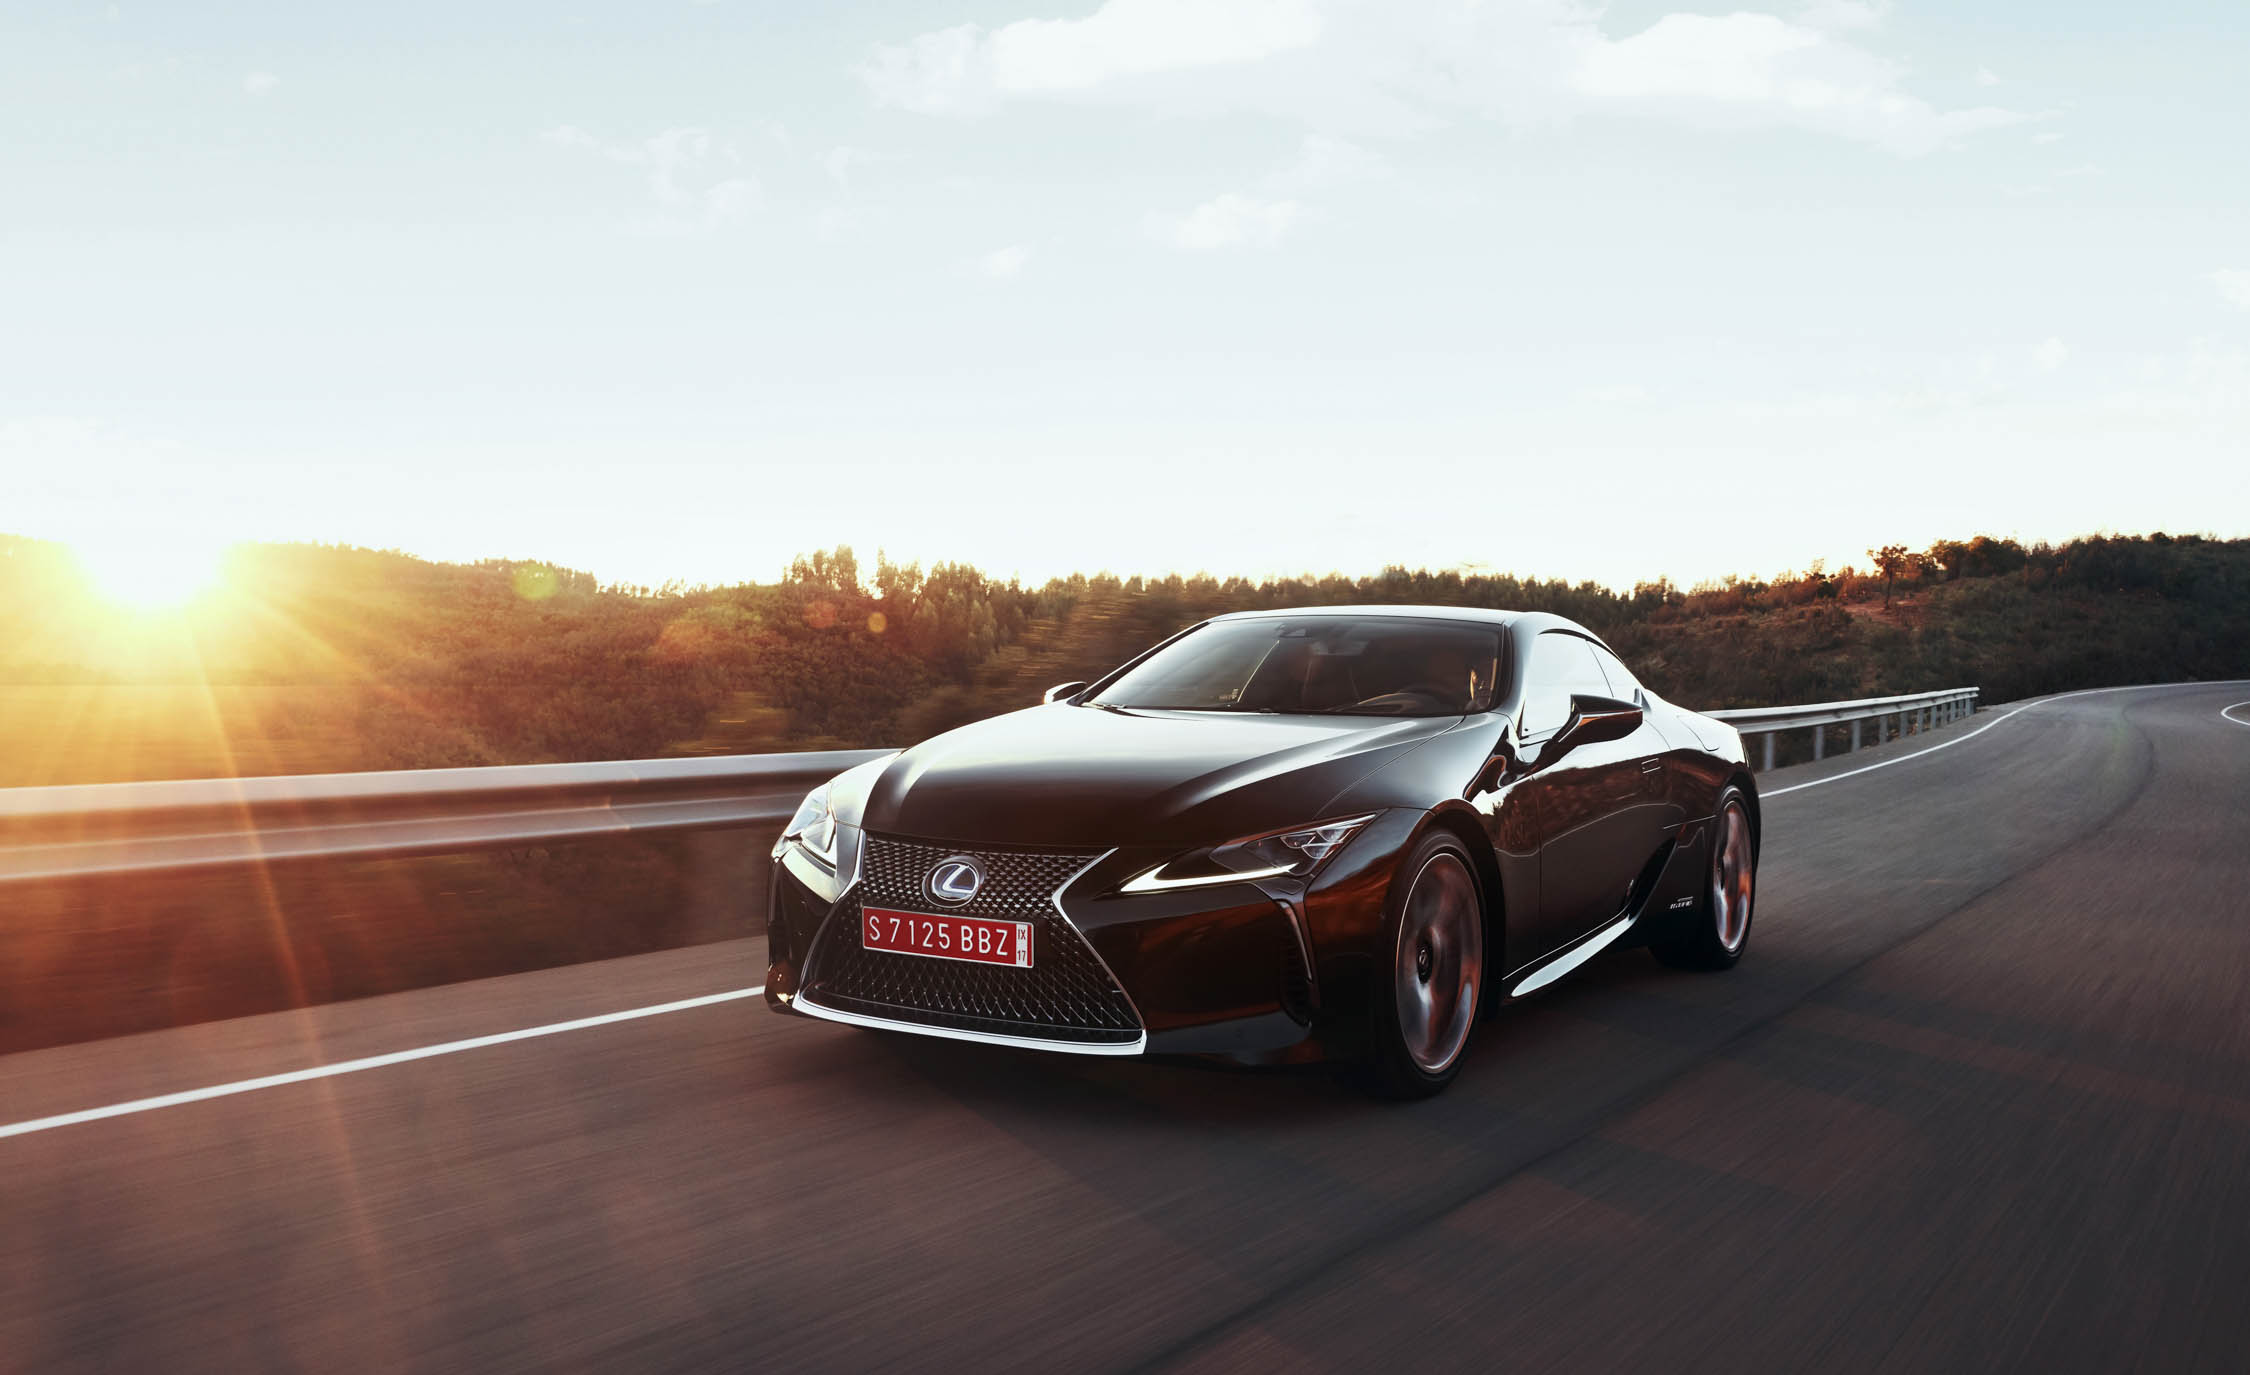 2018 Lexus Lc 500h Test Drive Front And Side View (Photo 42 of 84)